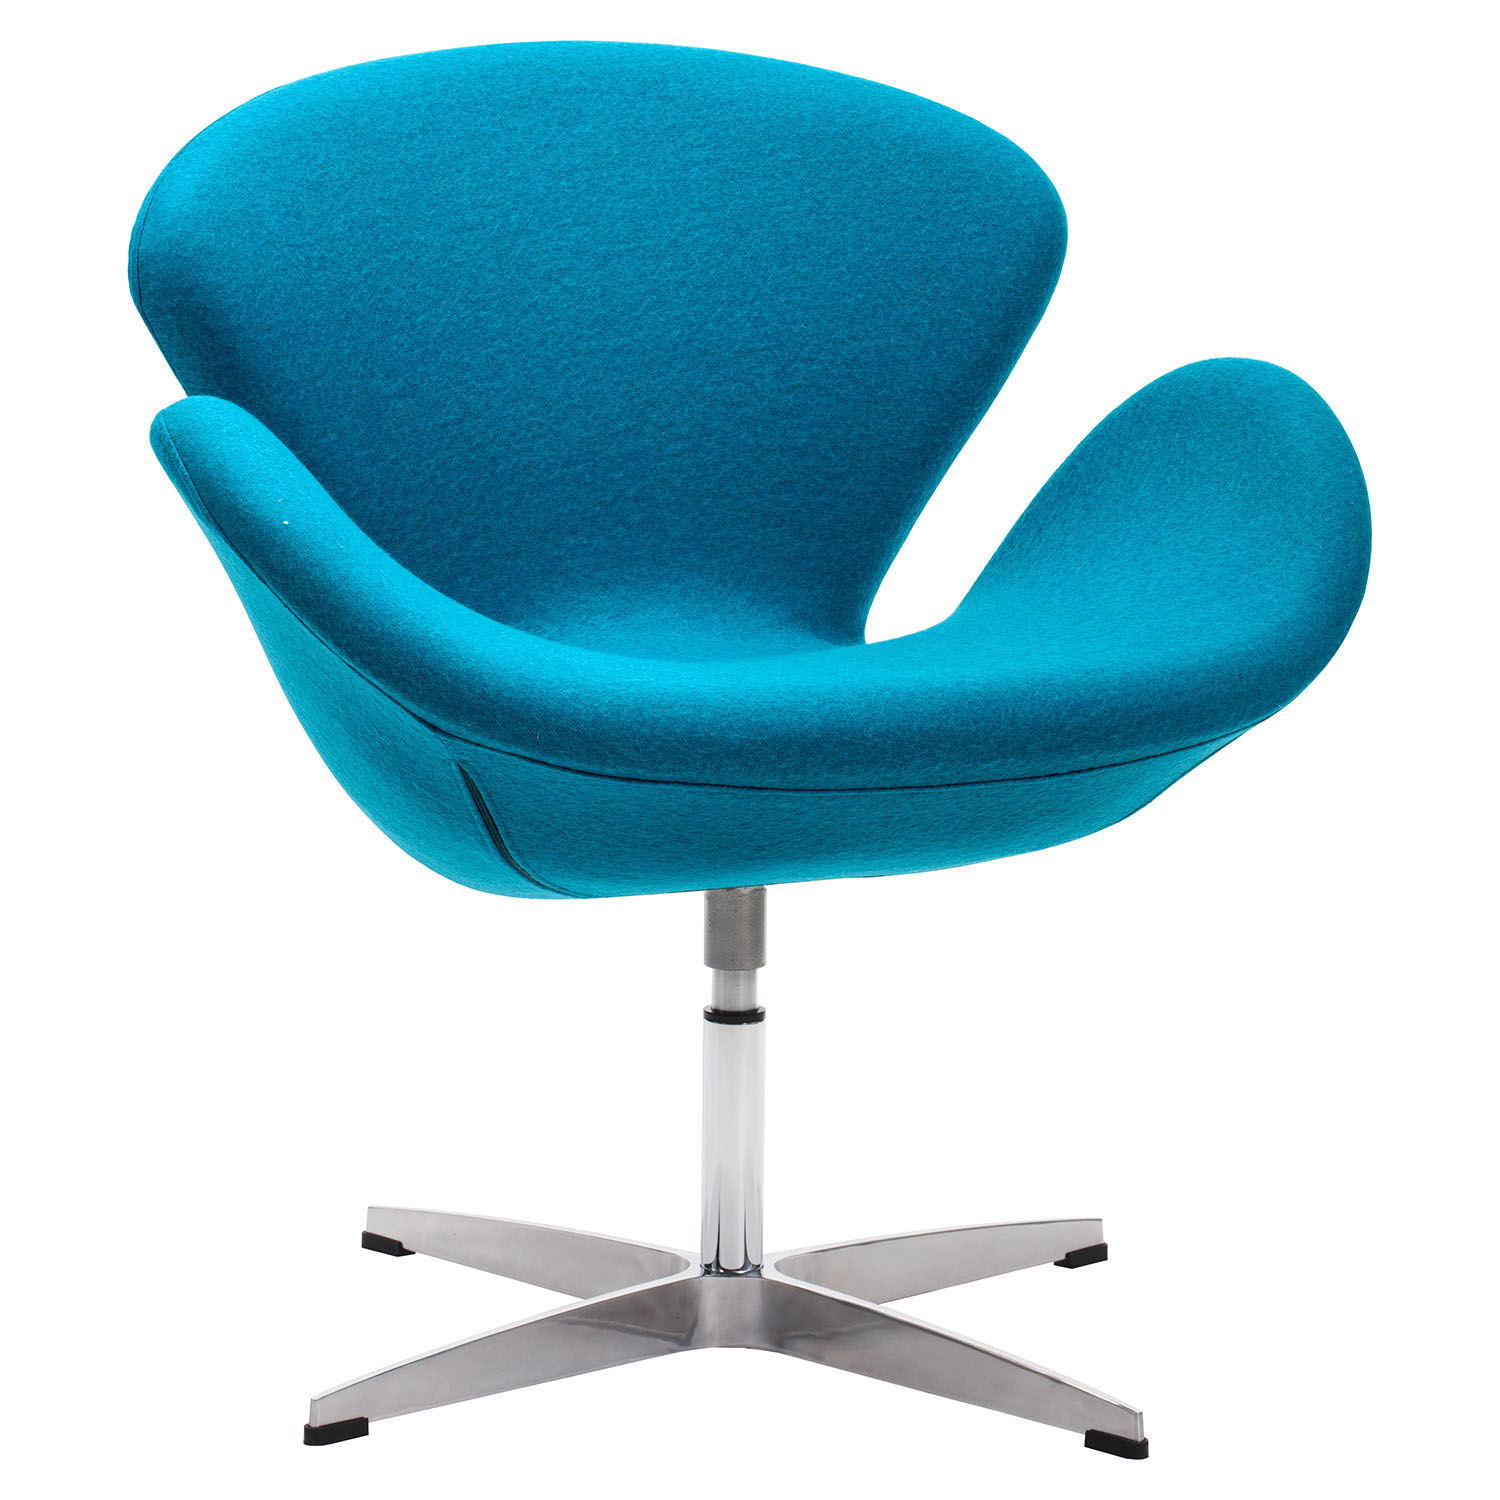 Pori Arm Chair - Island Blue